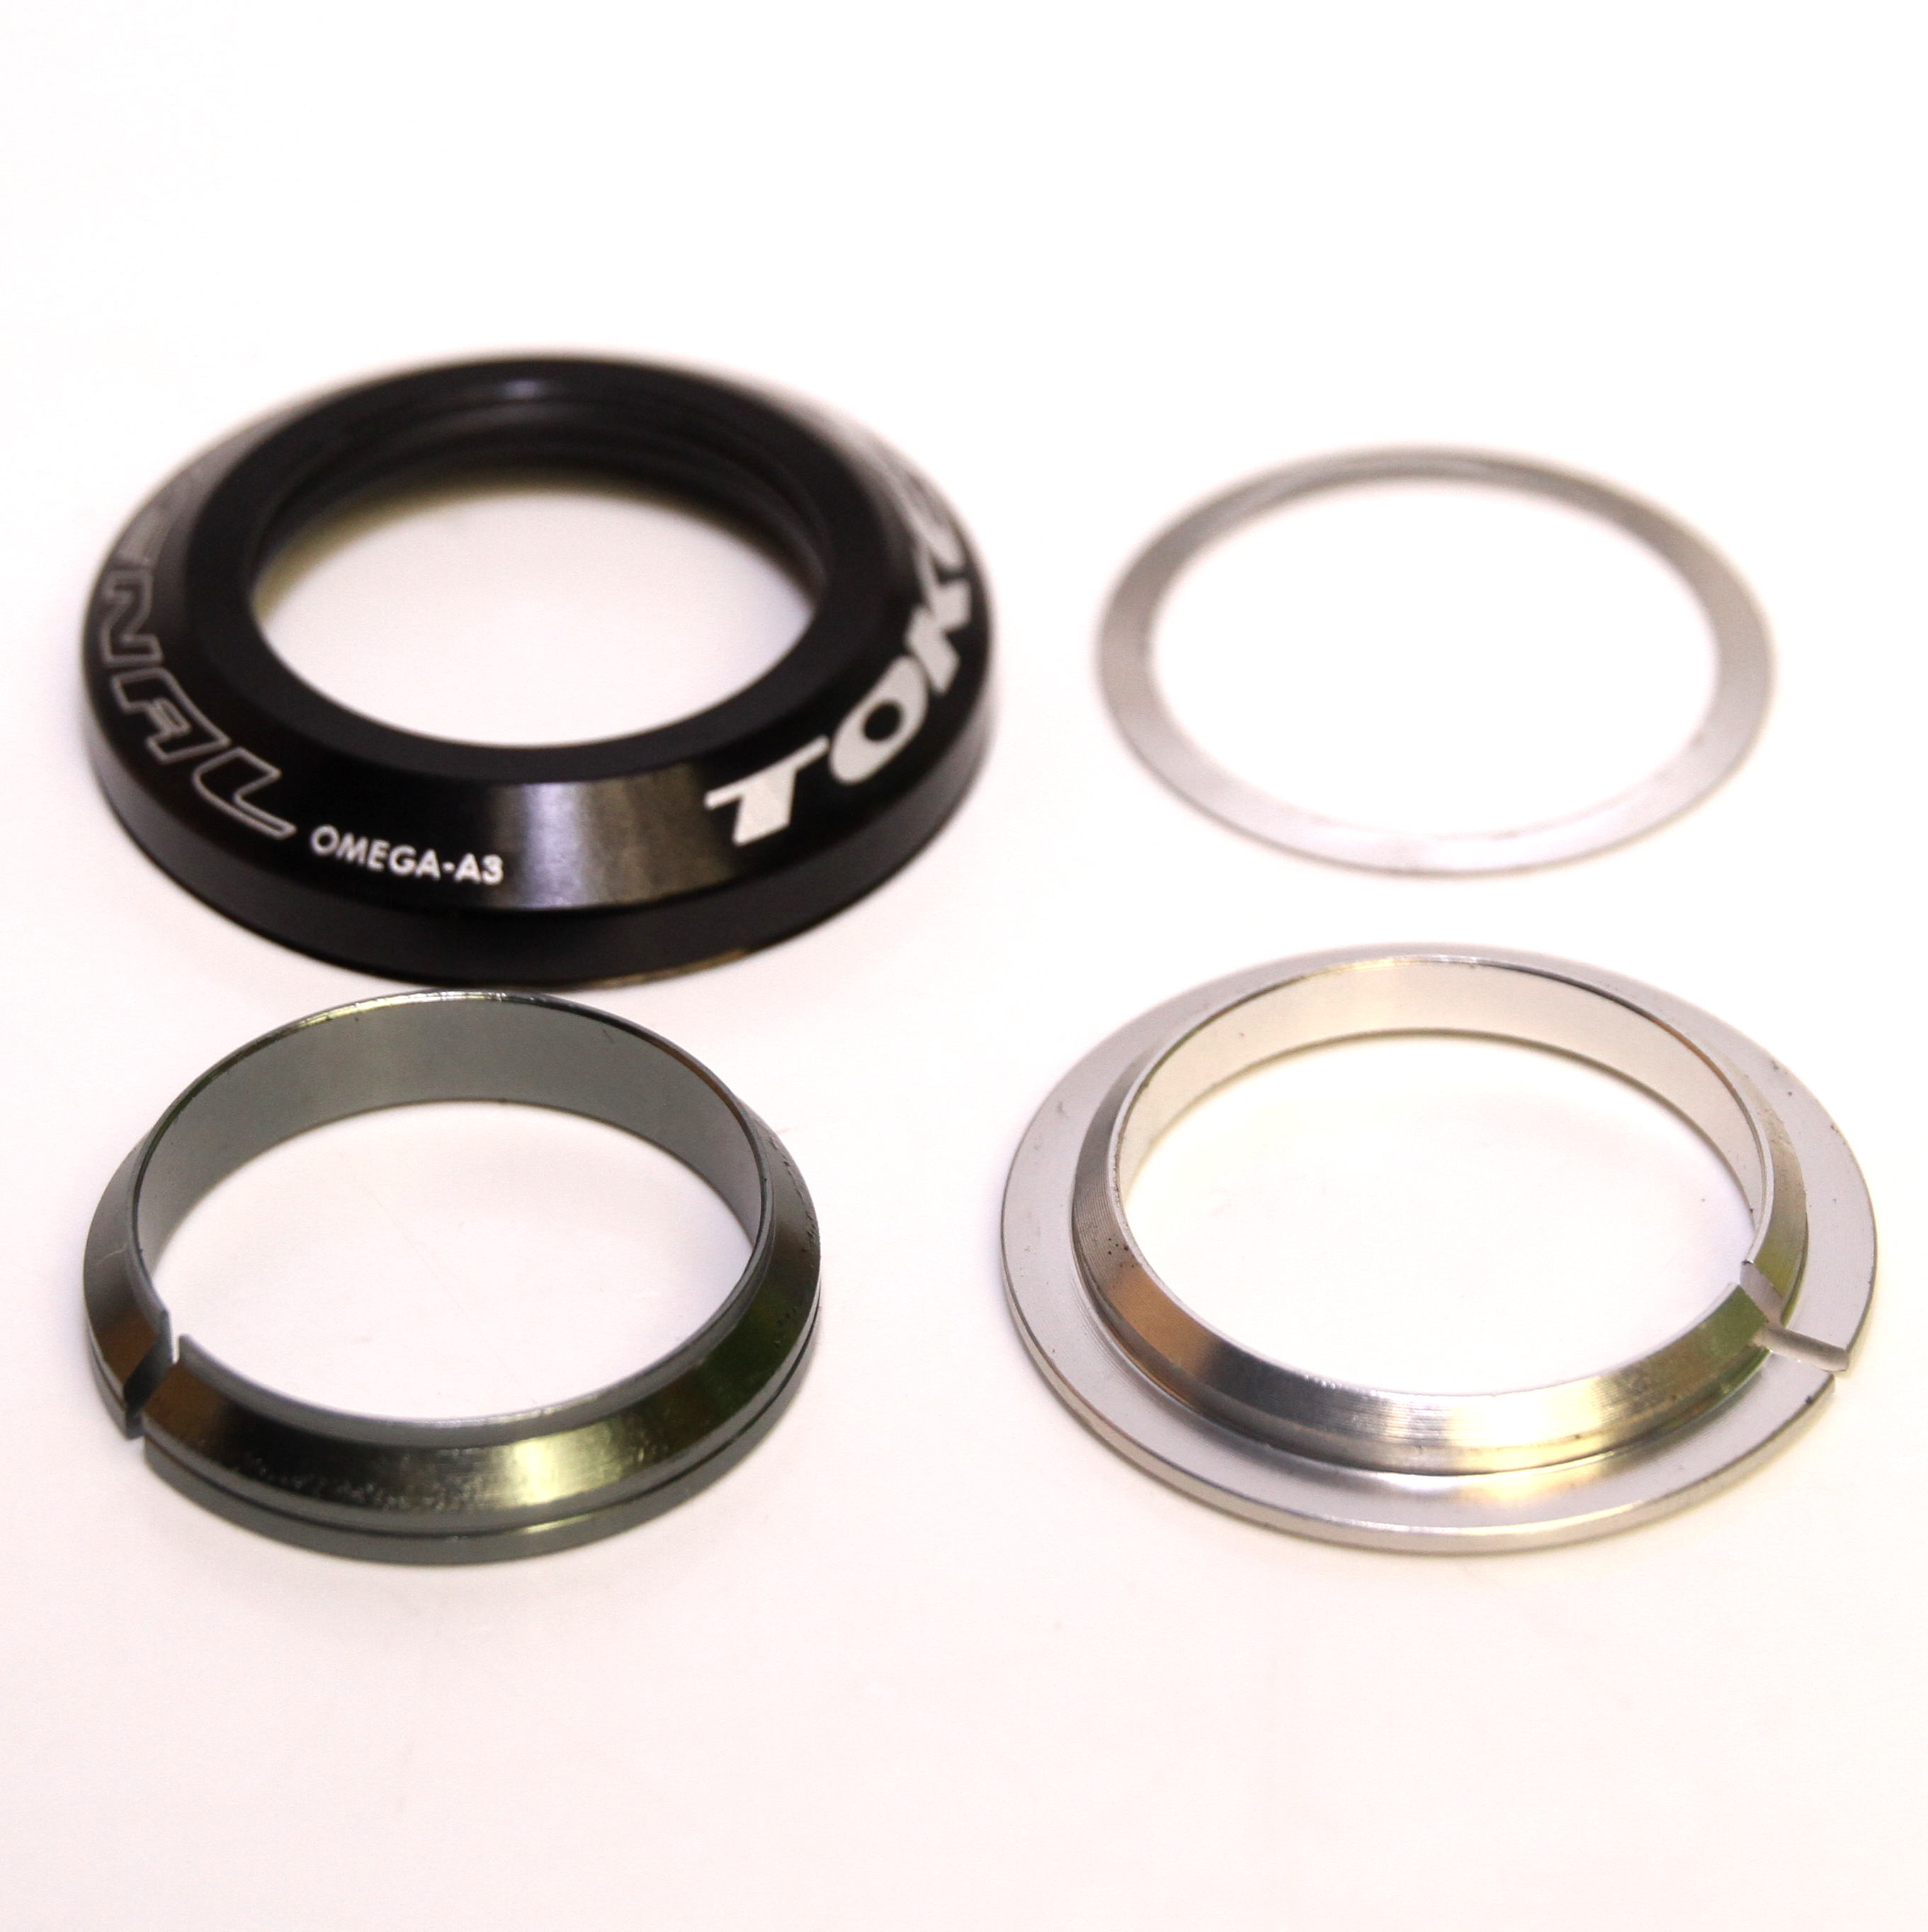 "Token Arsenal OMEGA-A3 1-1/8"" Alloy Integrated Headset Crown 45x45 and Top Seal Split Rings & Shims - Black"